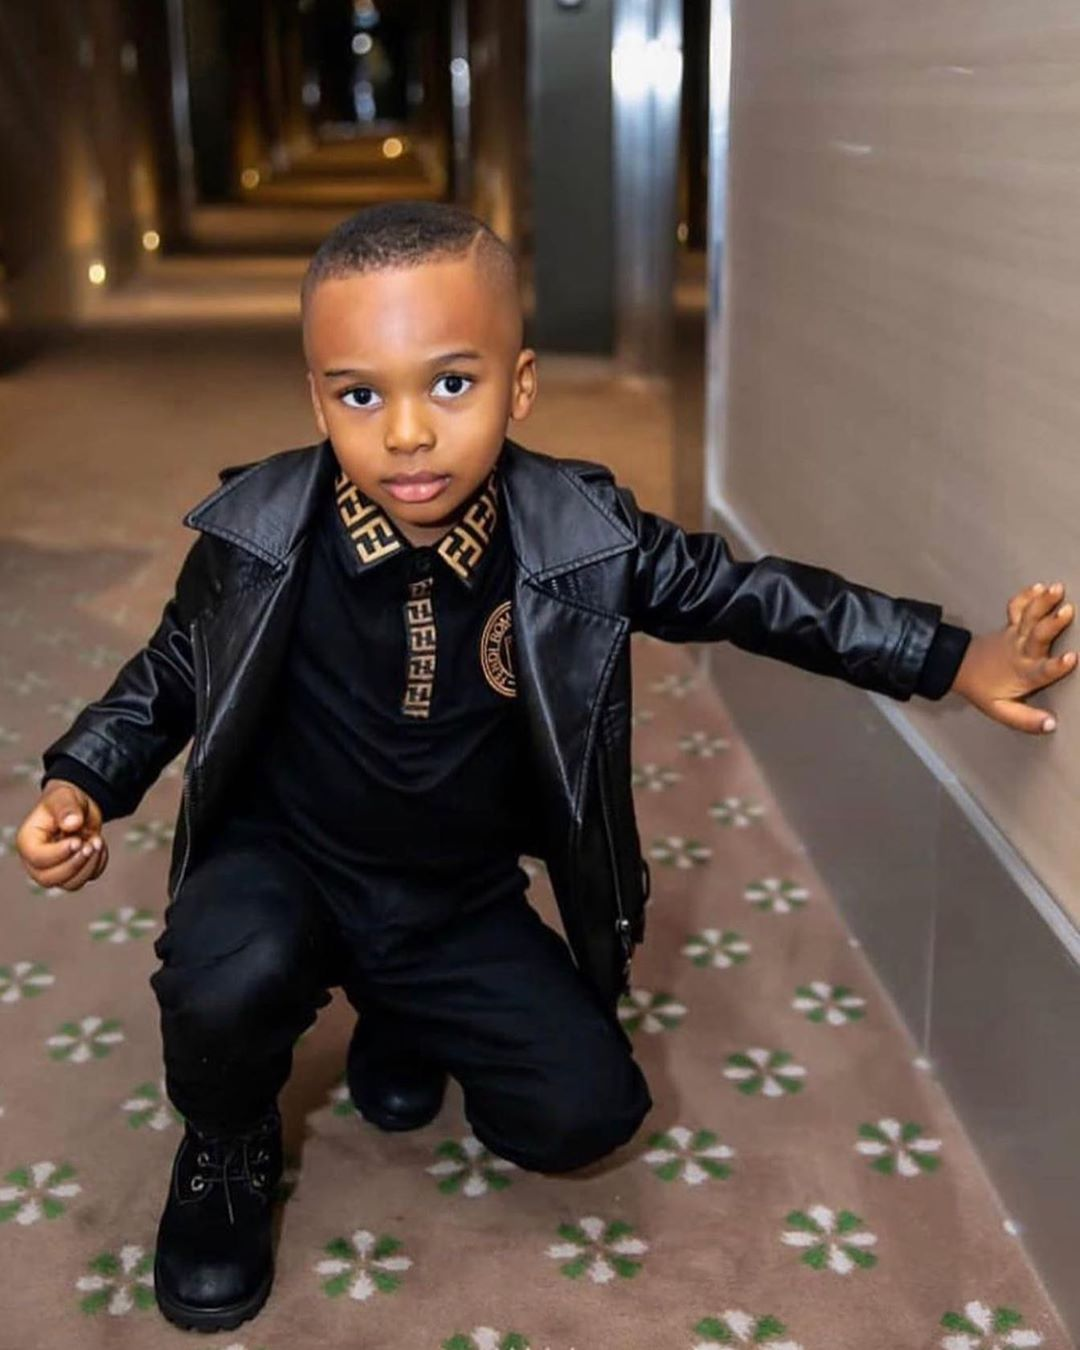 'My challenge with Tonto Dikeh will not come between us' – Olakunle Churchill celebrates son on his birthday